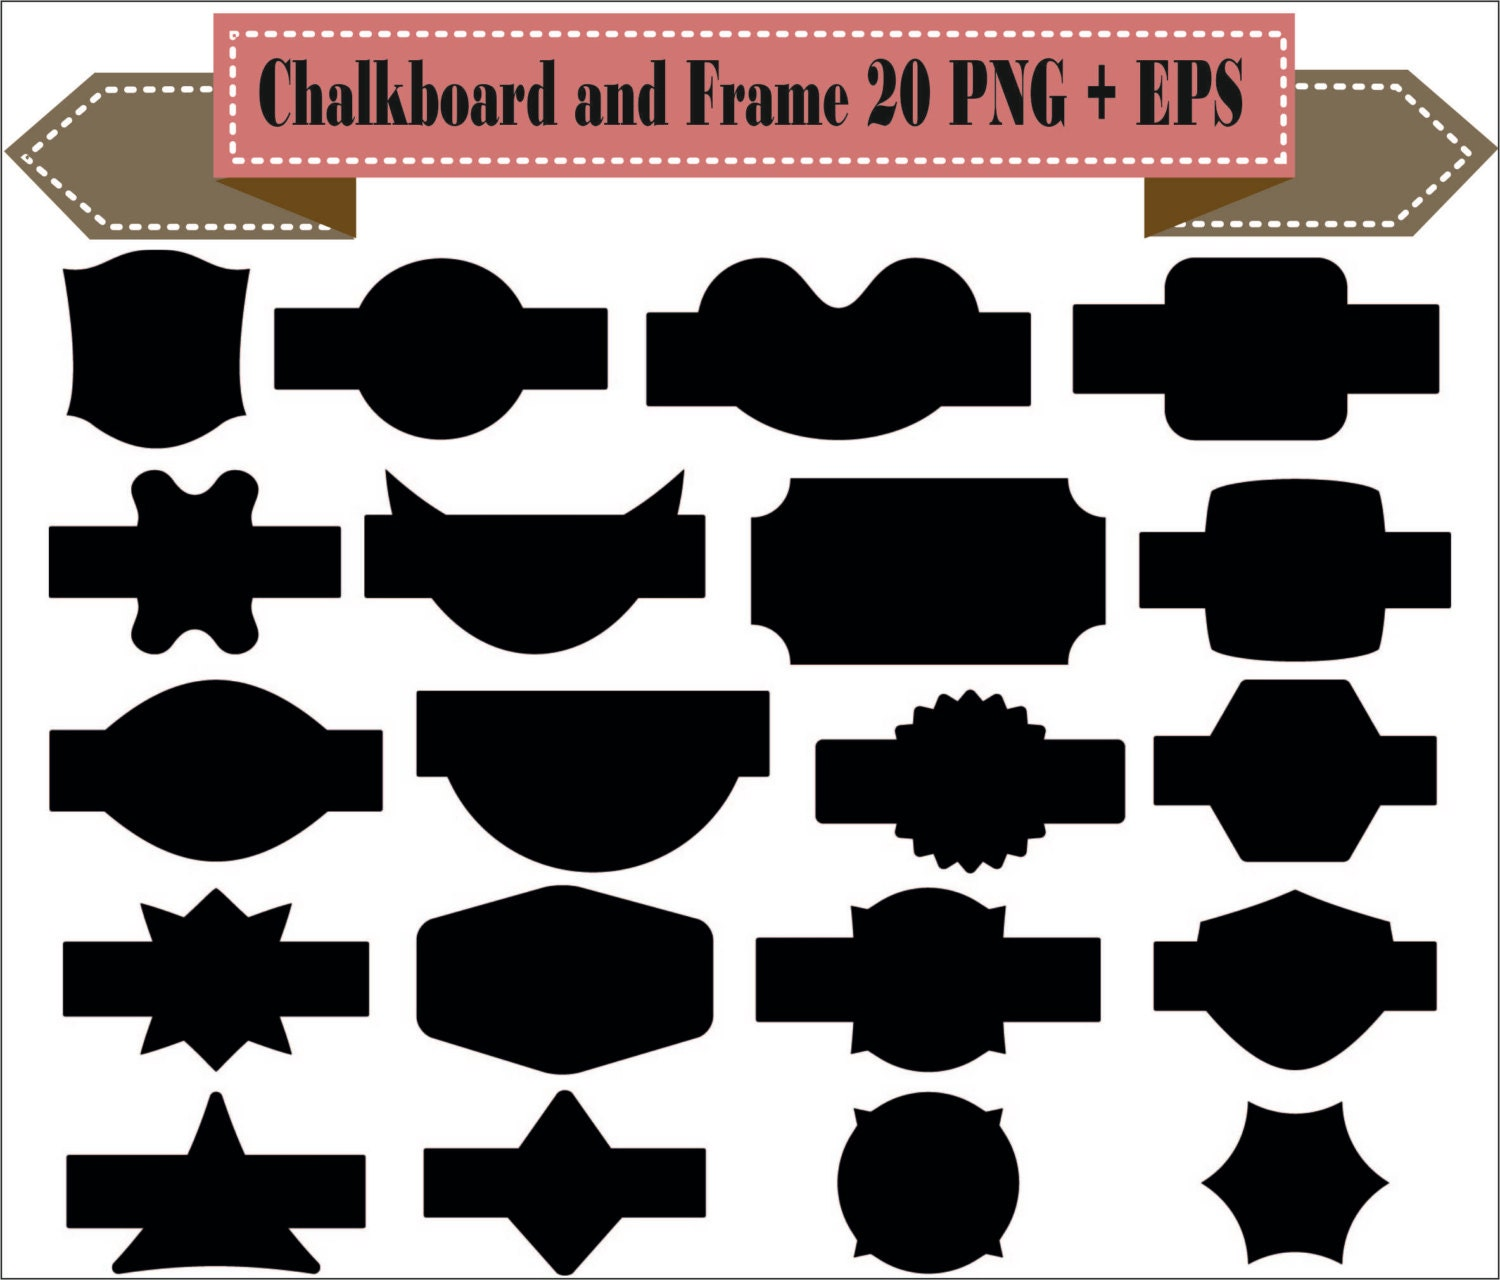 Chalkboard Frame Badges Vintage Label Motif Shapes Pack ...